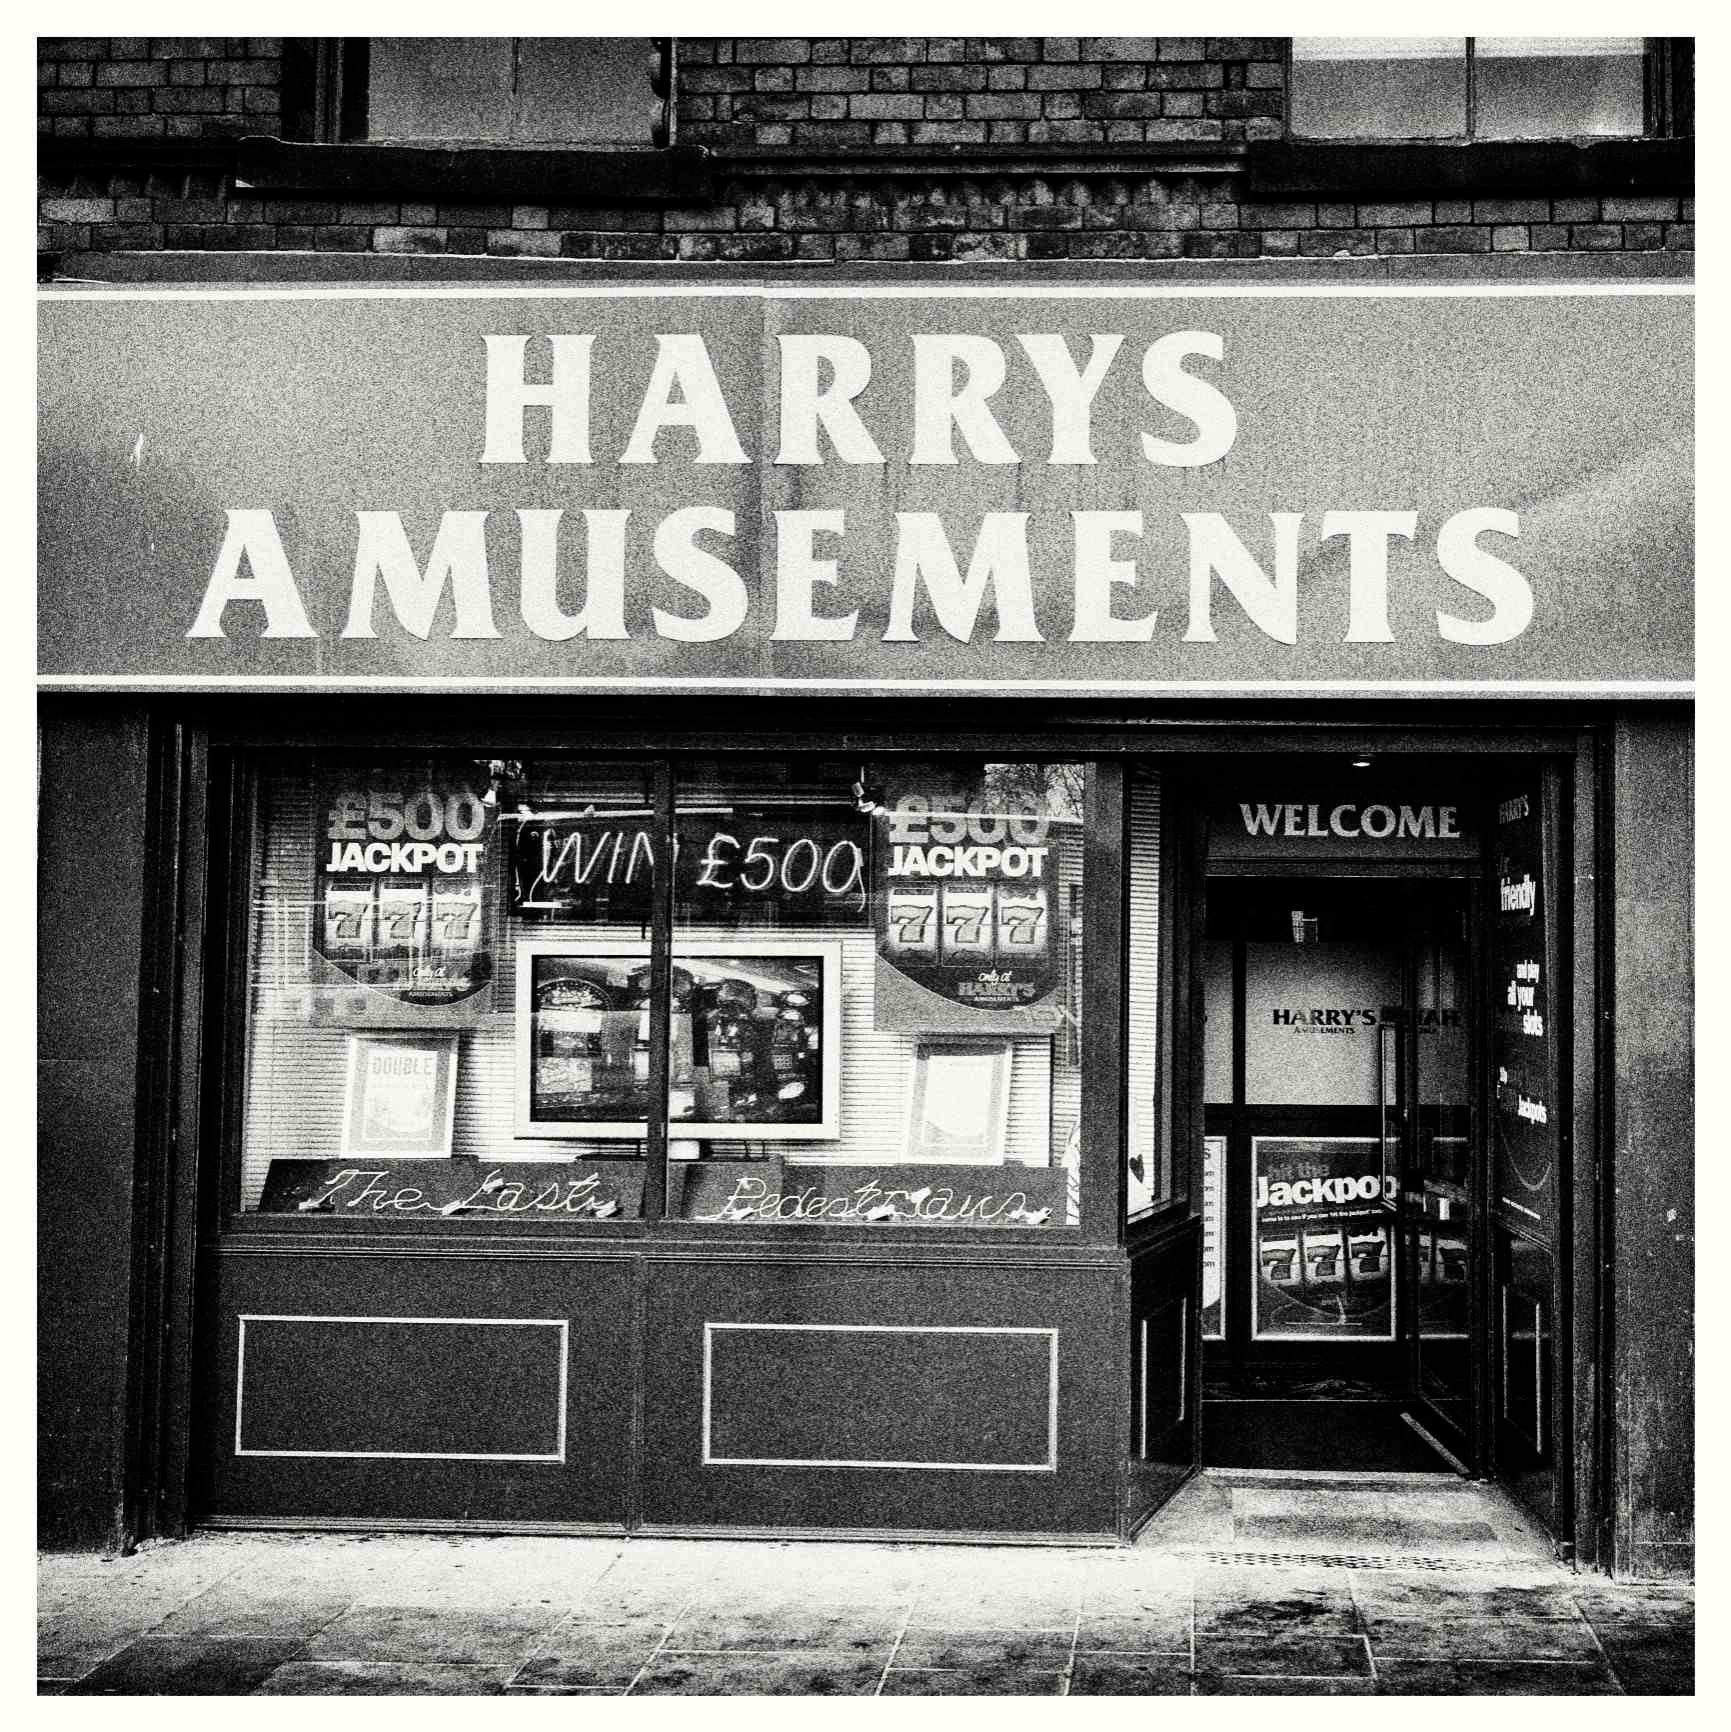 Harry's Amusements by The Last Pedestrians